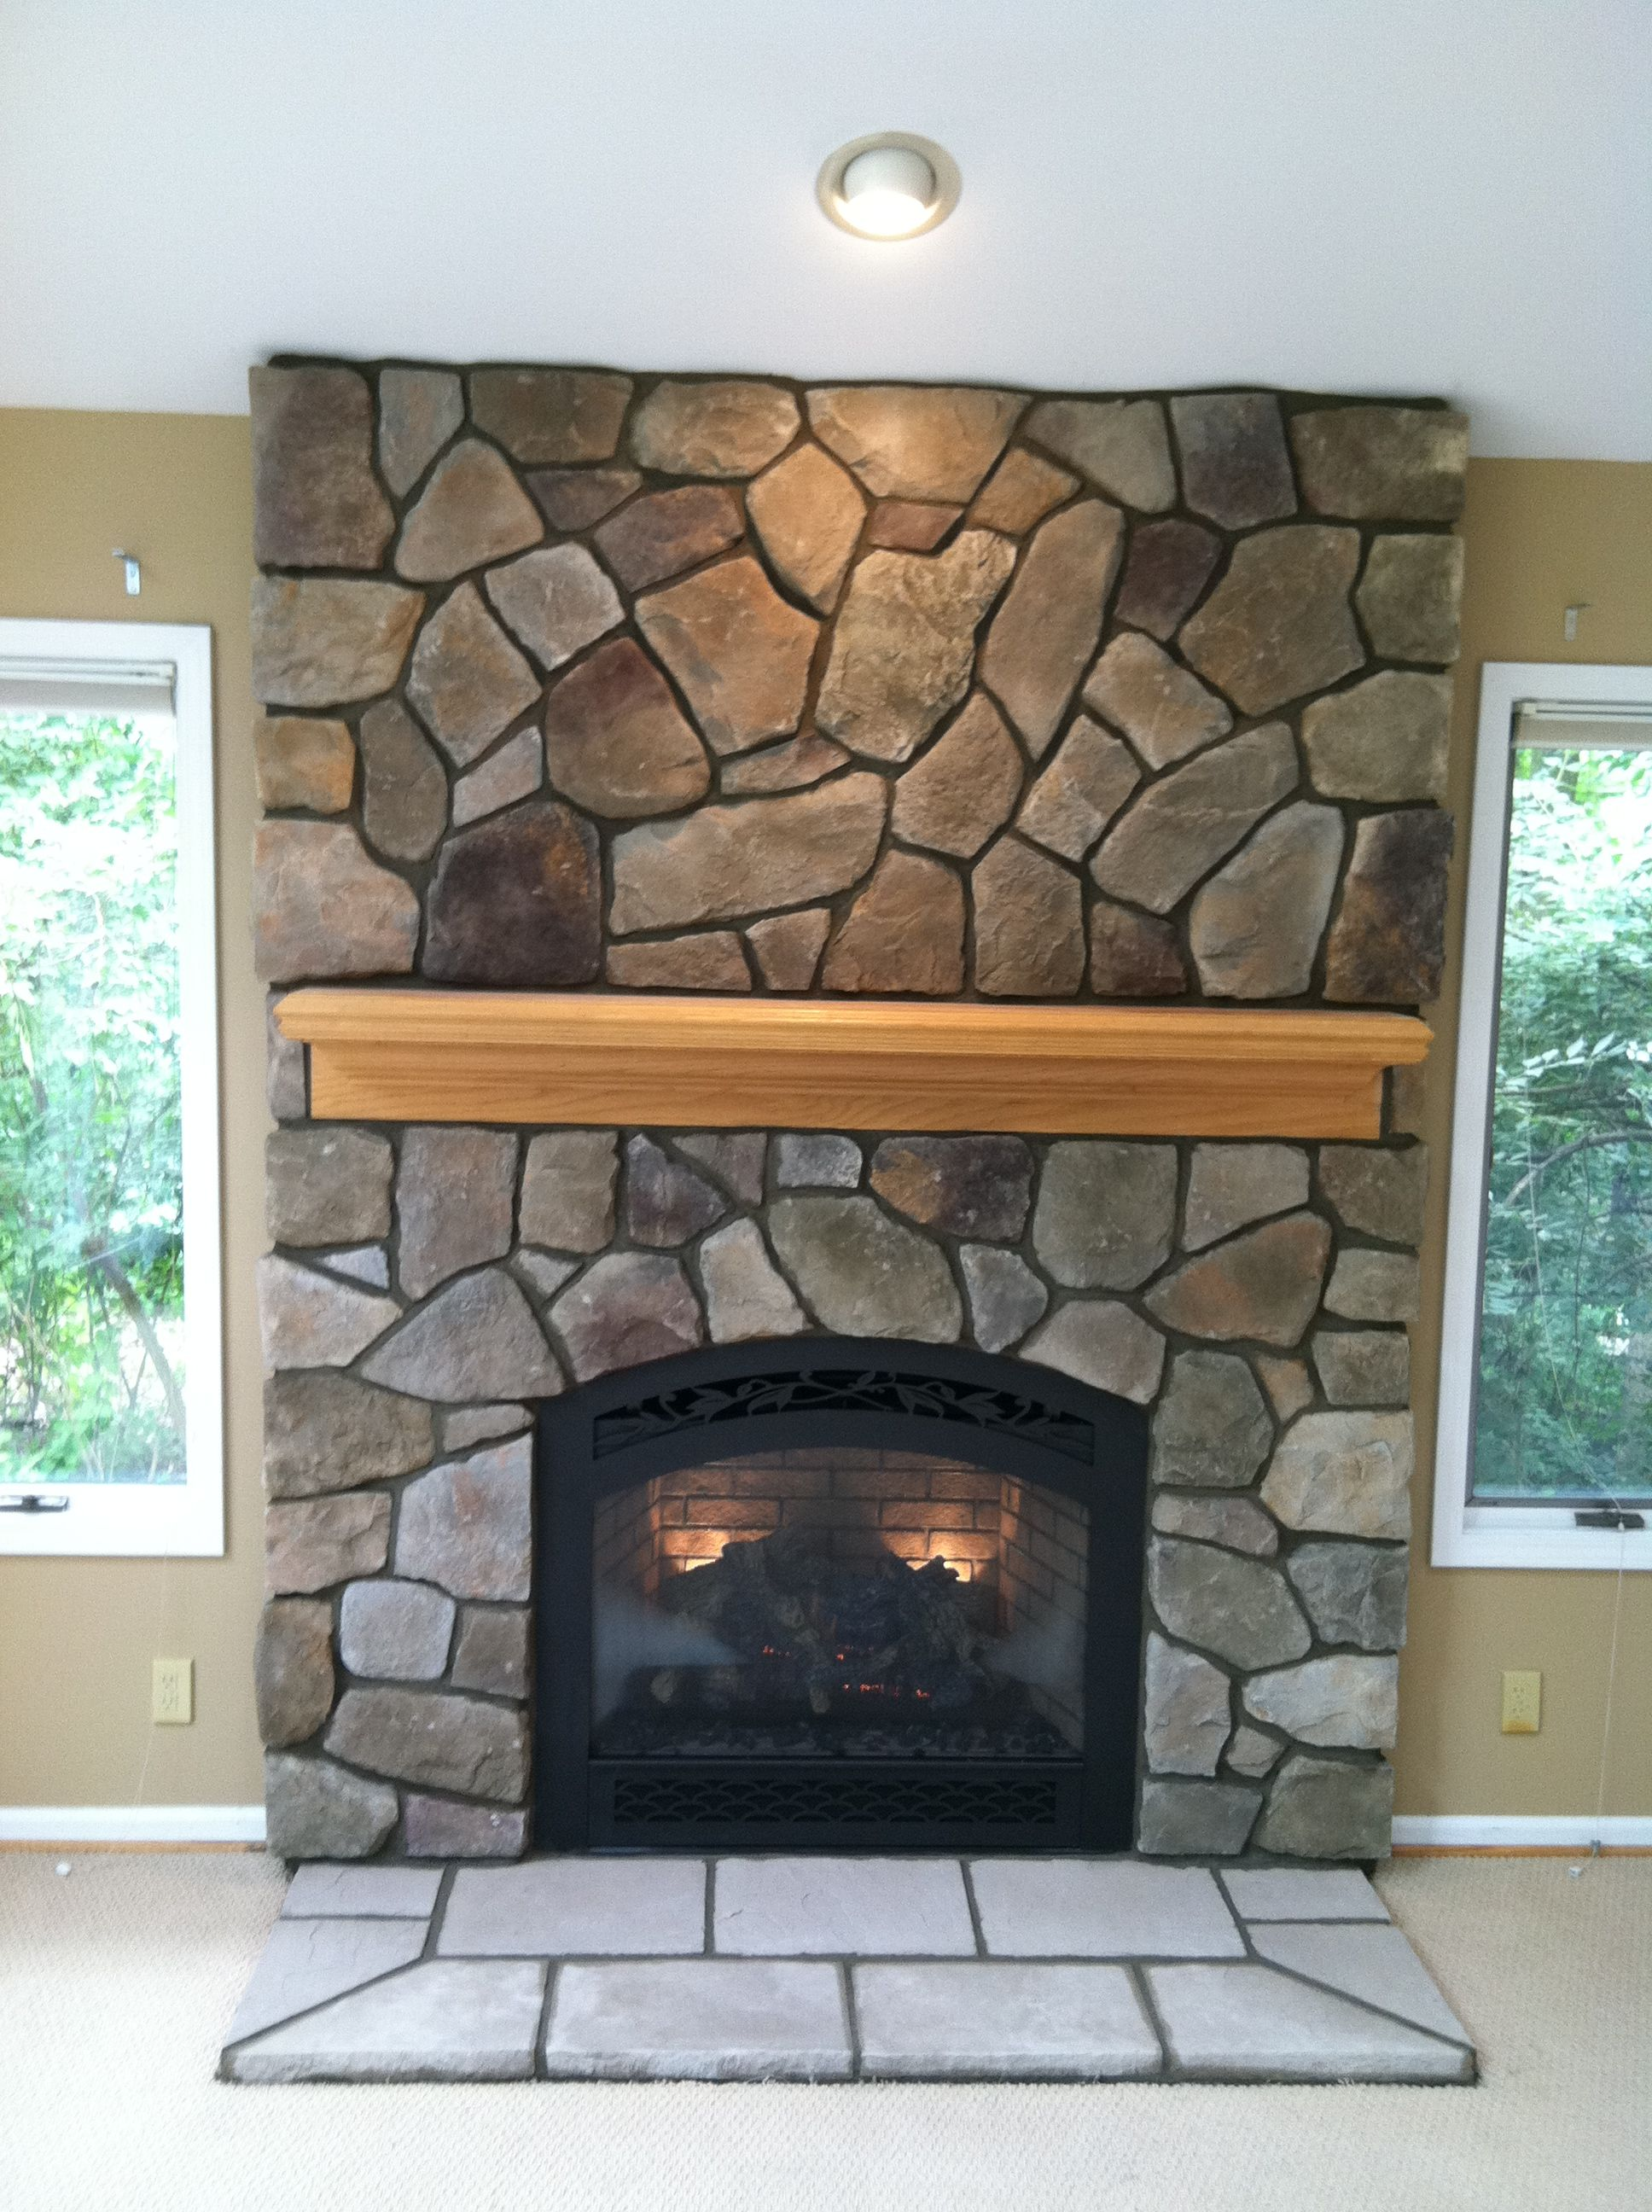 Cultured stone fireplace surround - Bucks County Dressed Fieldstone By Boral Cultured Stone With Wood Mantel 864 Fpx Dv Gas